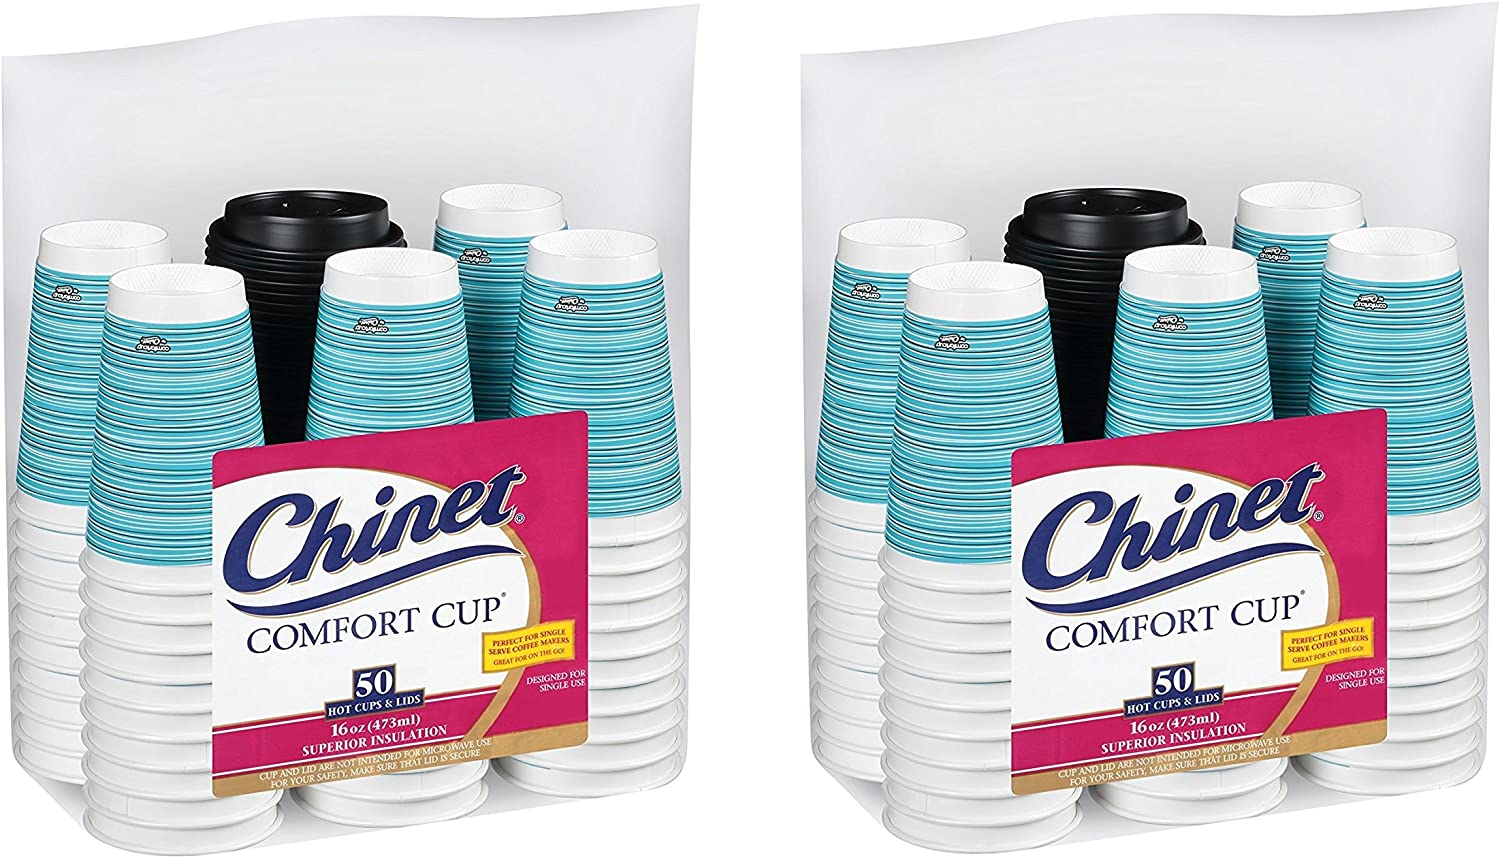 Chinet Comfort Cup 16-Ounce Price Recommended reduction Cups 50-Count Lids Assorted